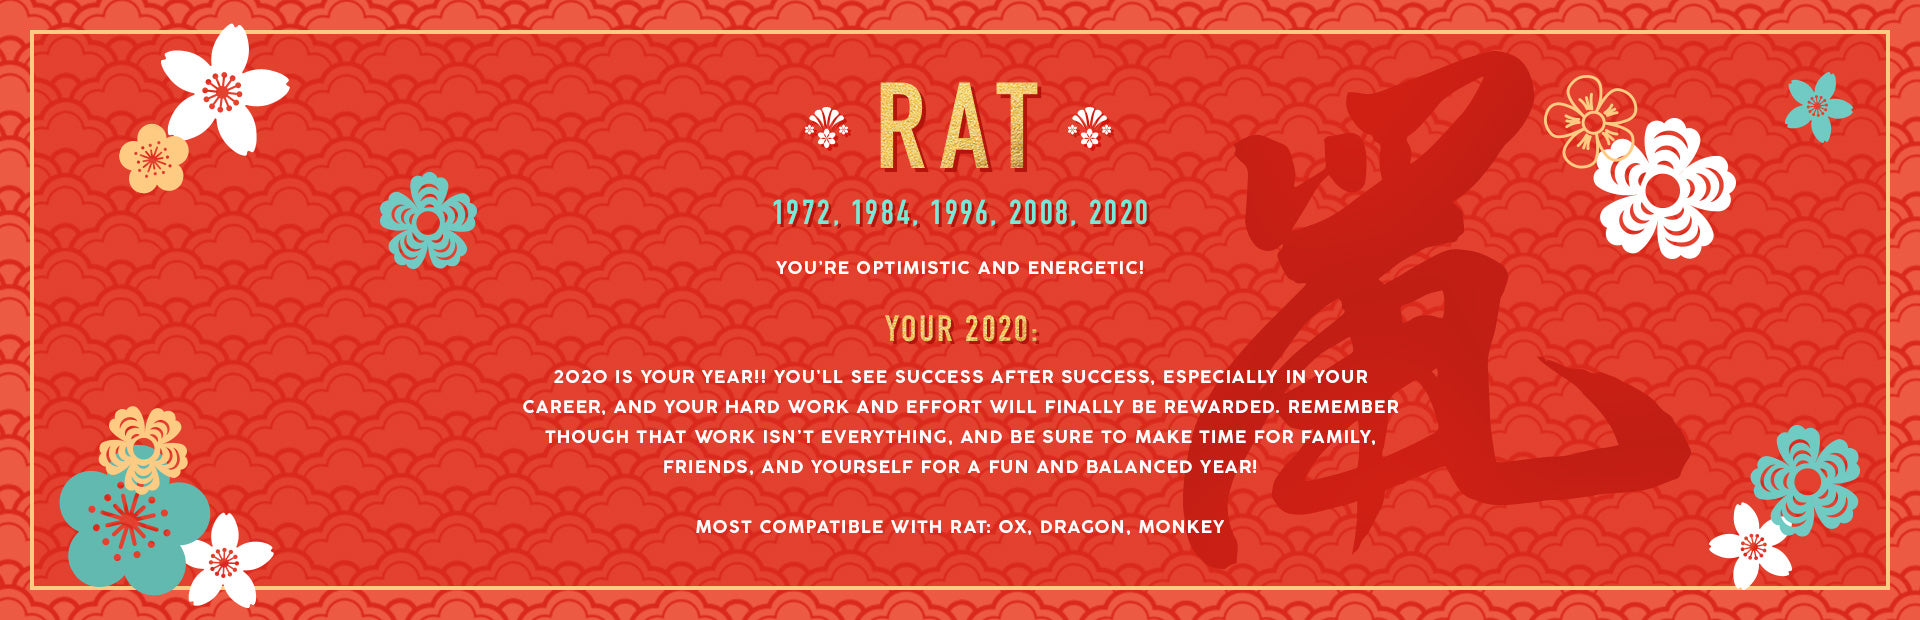 Rat Lunar New Year Collection Banner Image